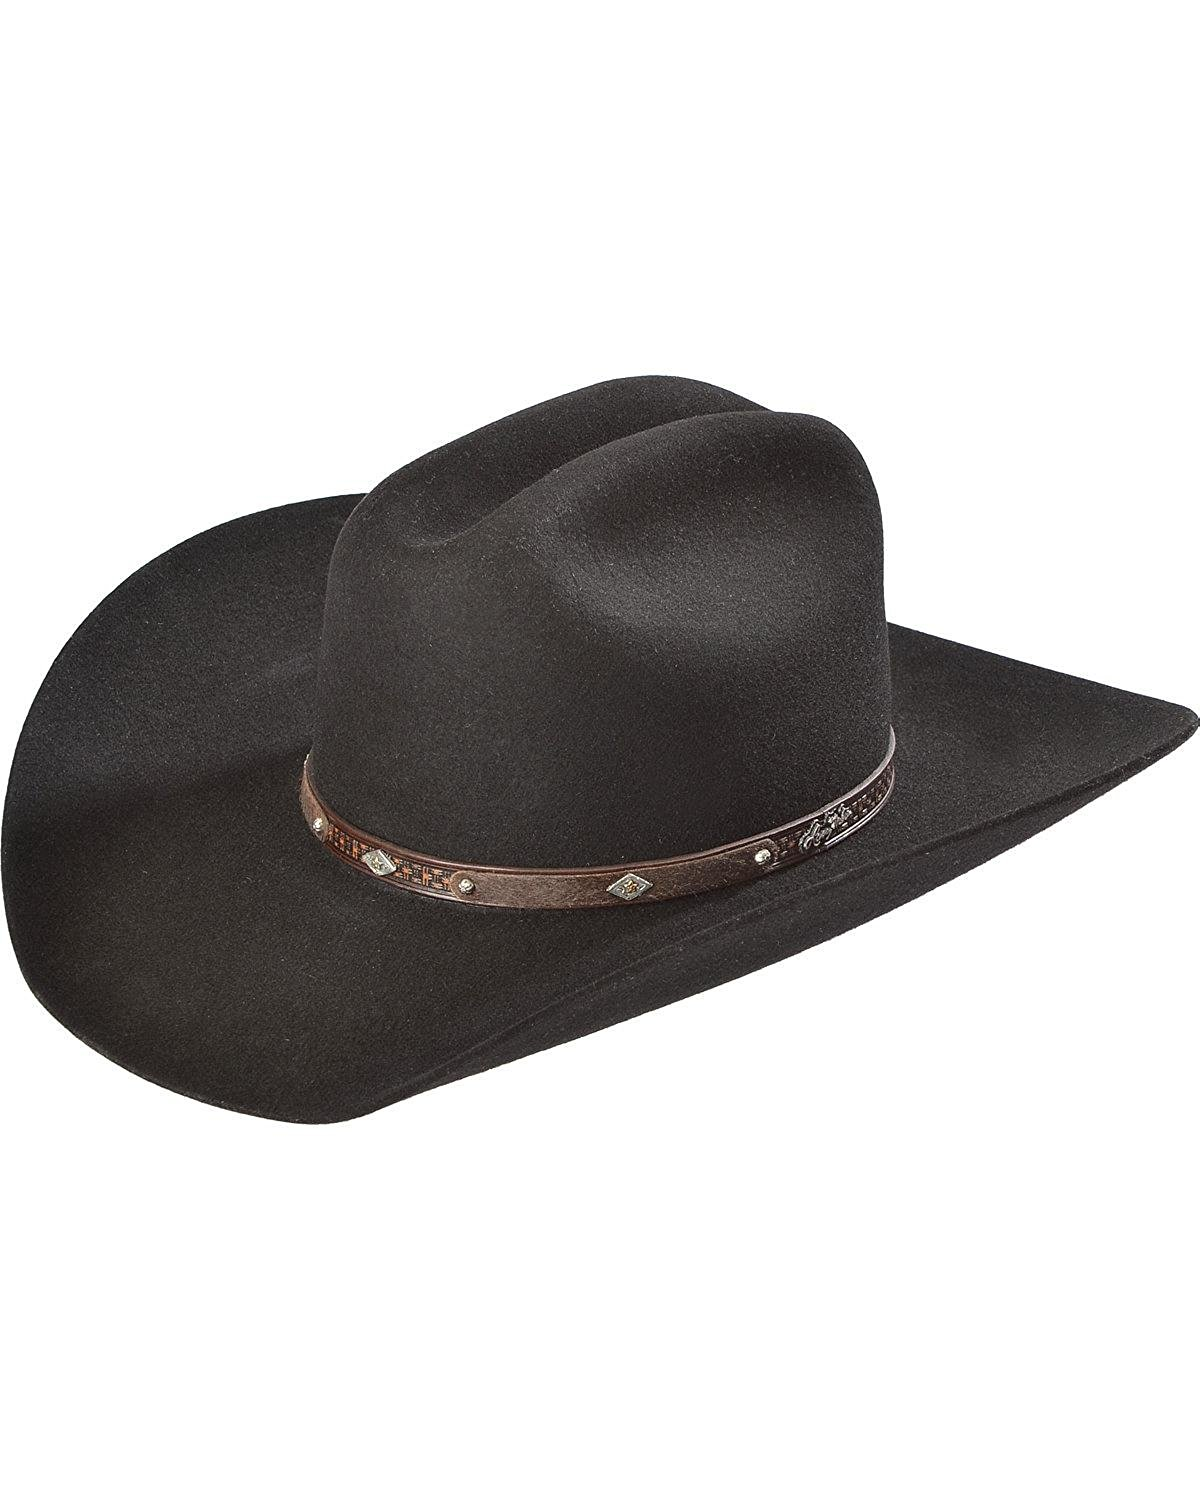 74197e17c Buy Larry Mahan Mens 30X Pancho Hat in Cheap Price on Alibaba.com